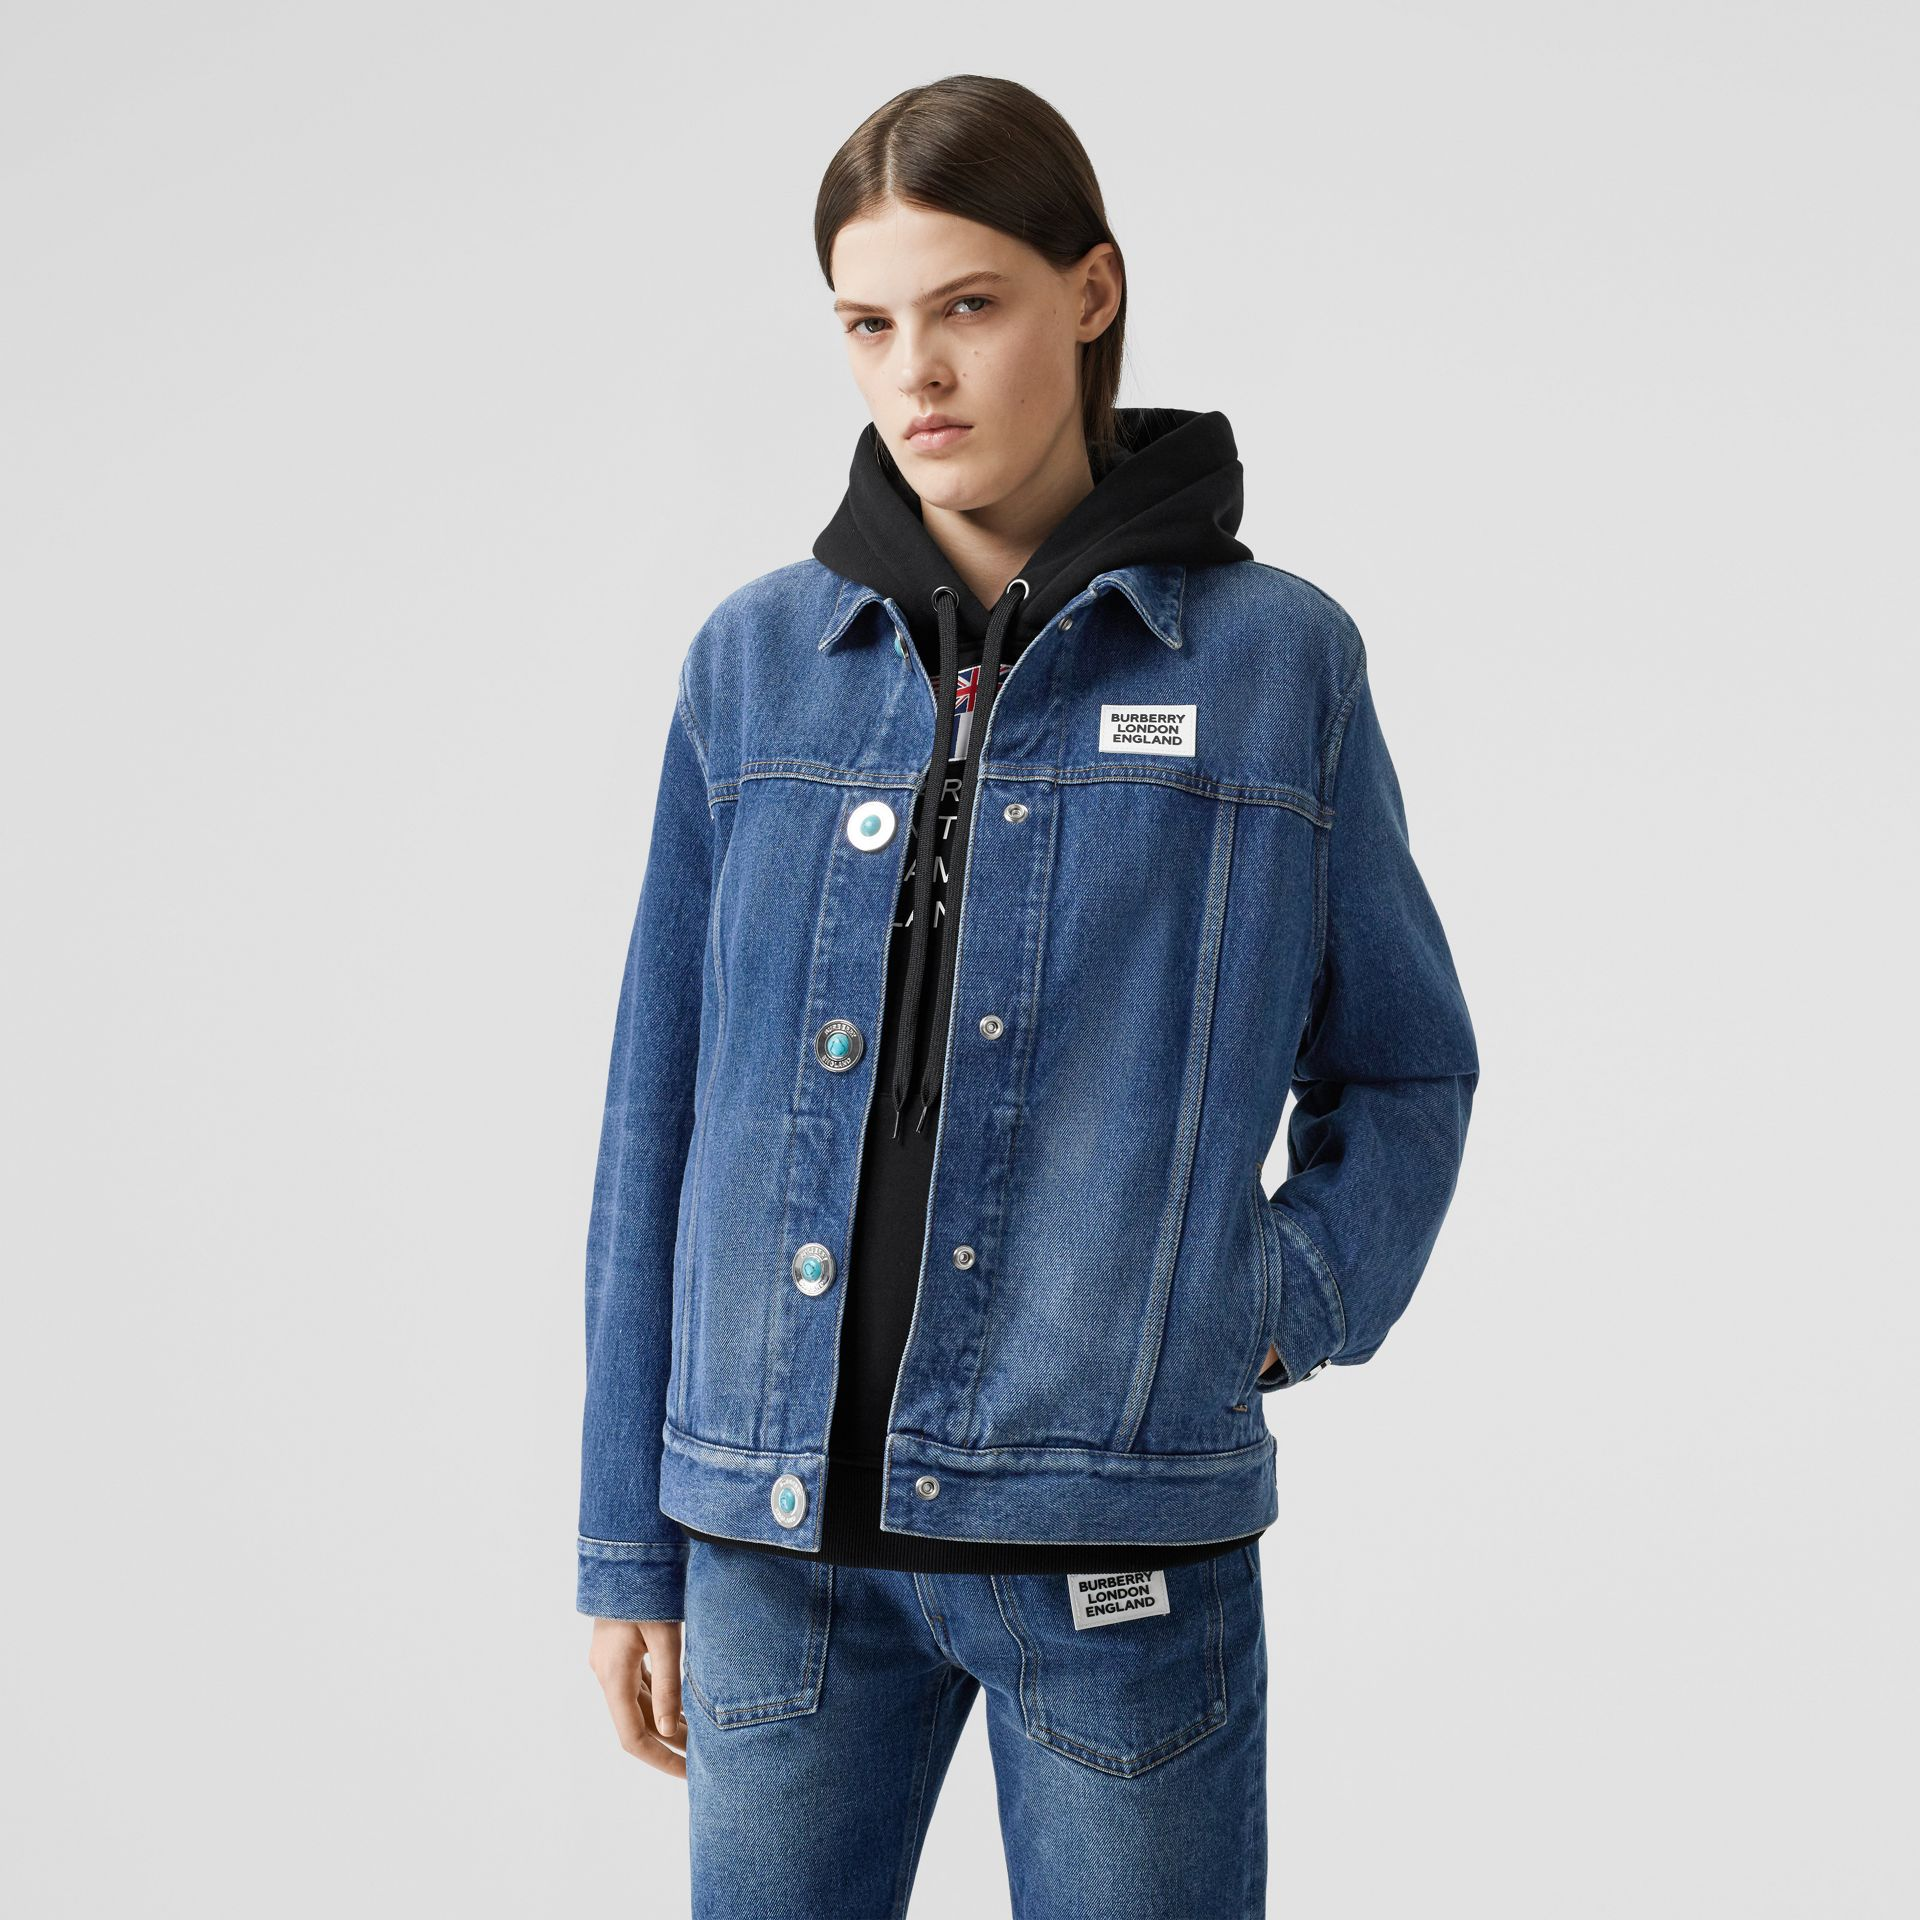 Logo Appliqué Reconstructed Denim Jacket in Indigo - Women | Burberry Singapore - gallery image 5